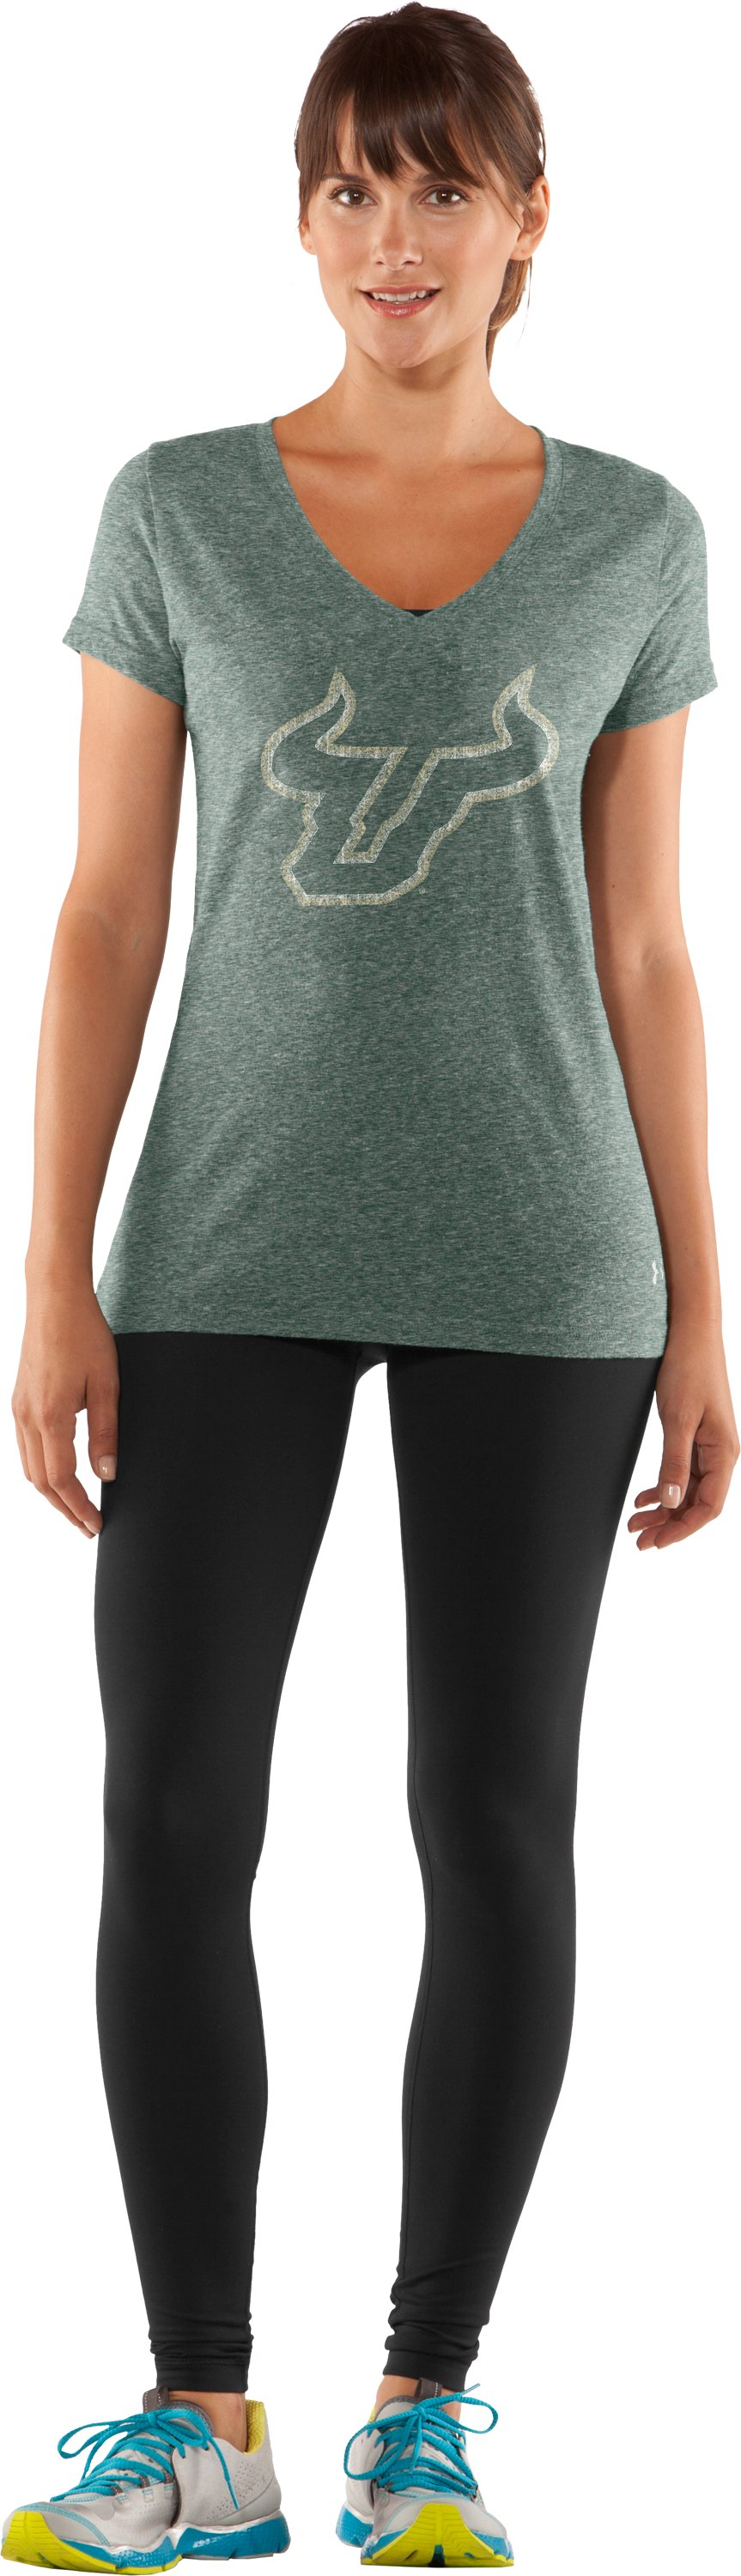 Women's South Florida Under Armour® Legacy T-Shirt, Forest Green